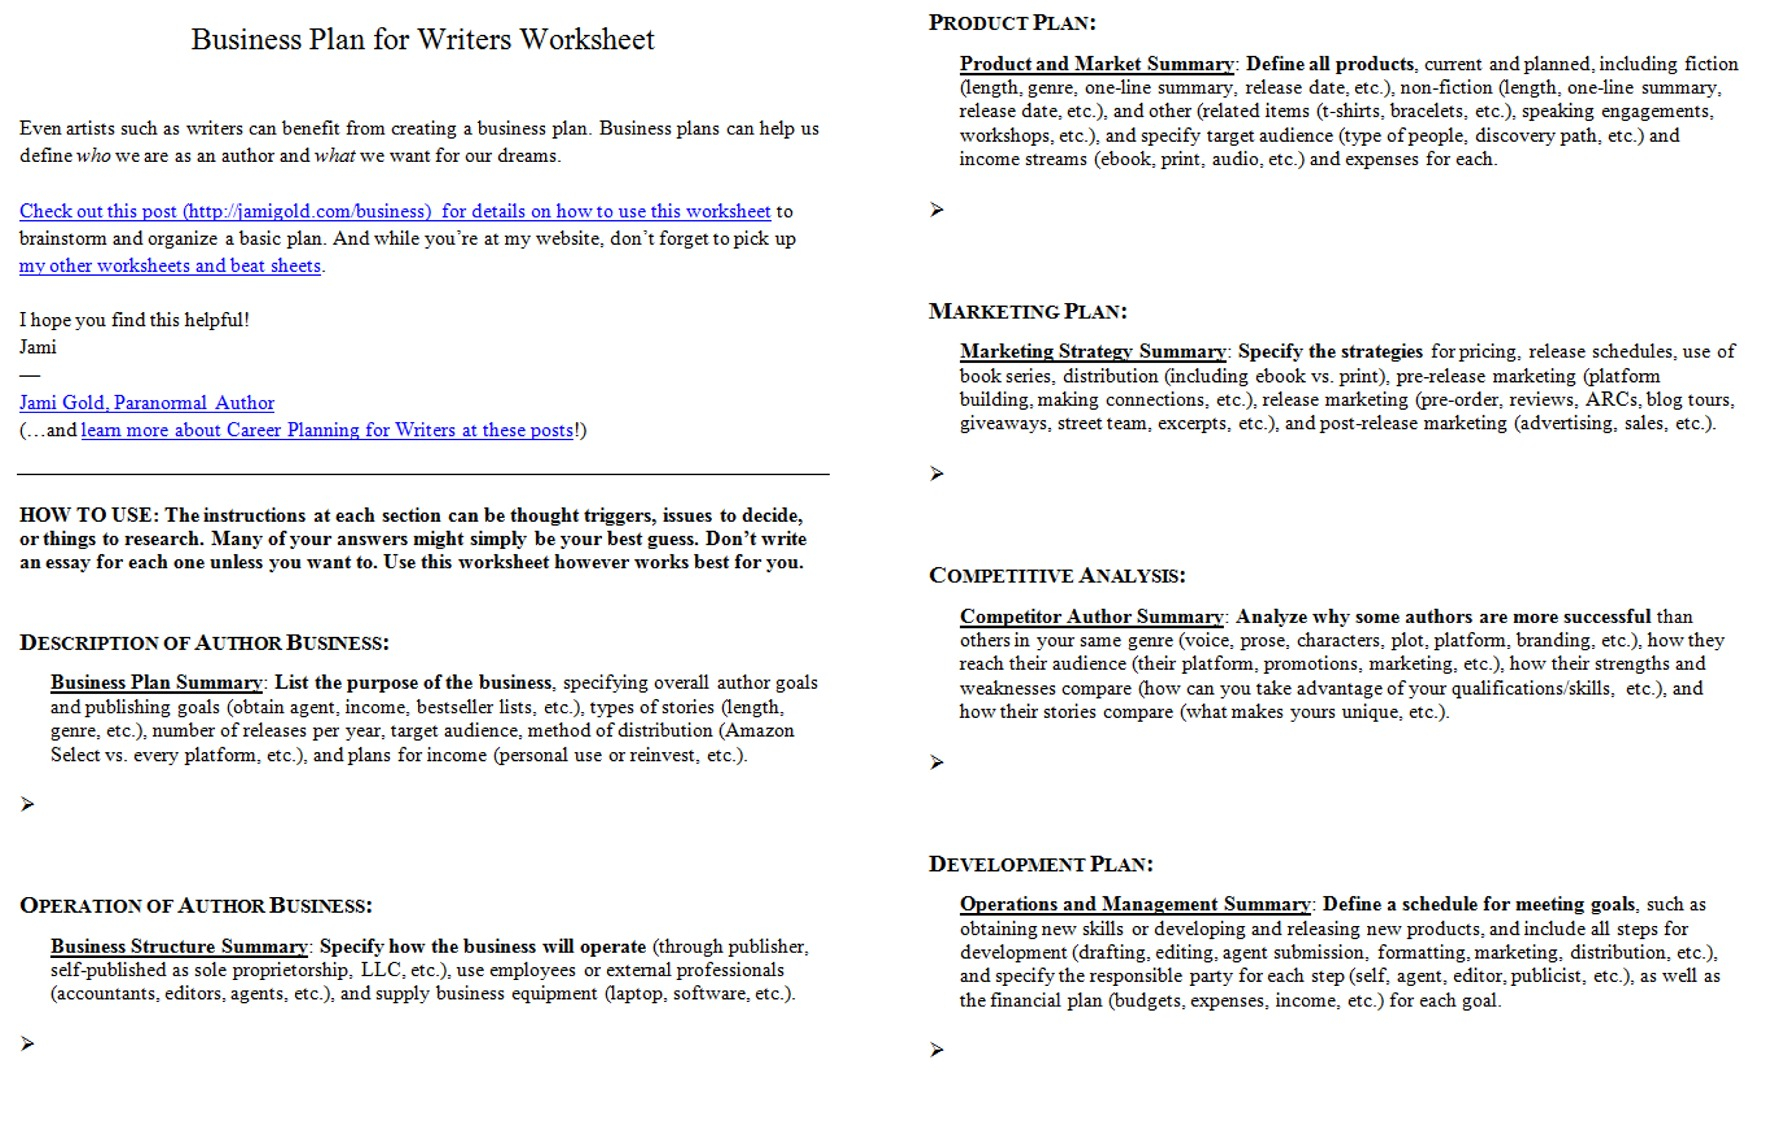 Weirdmailus  Mesmerizing Worksheets For Writers  Jami Gold Paranormal Author With Lovable Screen Shot Of Both Pages Of The Business Plan For Writers Worksheet With Endearing Time Table Practice Worksheets Also Teacher Printables Worksheets In Addition Multiplication Pattern Worksheets And Imperial Conversions Worksheet As Well As Mary Jones And Her Bible Worksheet Additionally Noun Verb And Adjective Worksheet From Jamigoldcom With Weirdmailus  Lovable Worksheets For Writers  Jami Gold Paranormal Author With Endearing Screen Shot Of Both Pages Of The Business Plan For Writers Worksheet And Mesmerizing Time Table Practice Worksheets Also Teacher Printables Worksheets In Addition Multiplication Pattern Worksheets From Jamigoldcom